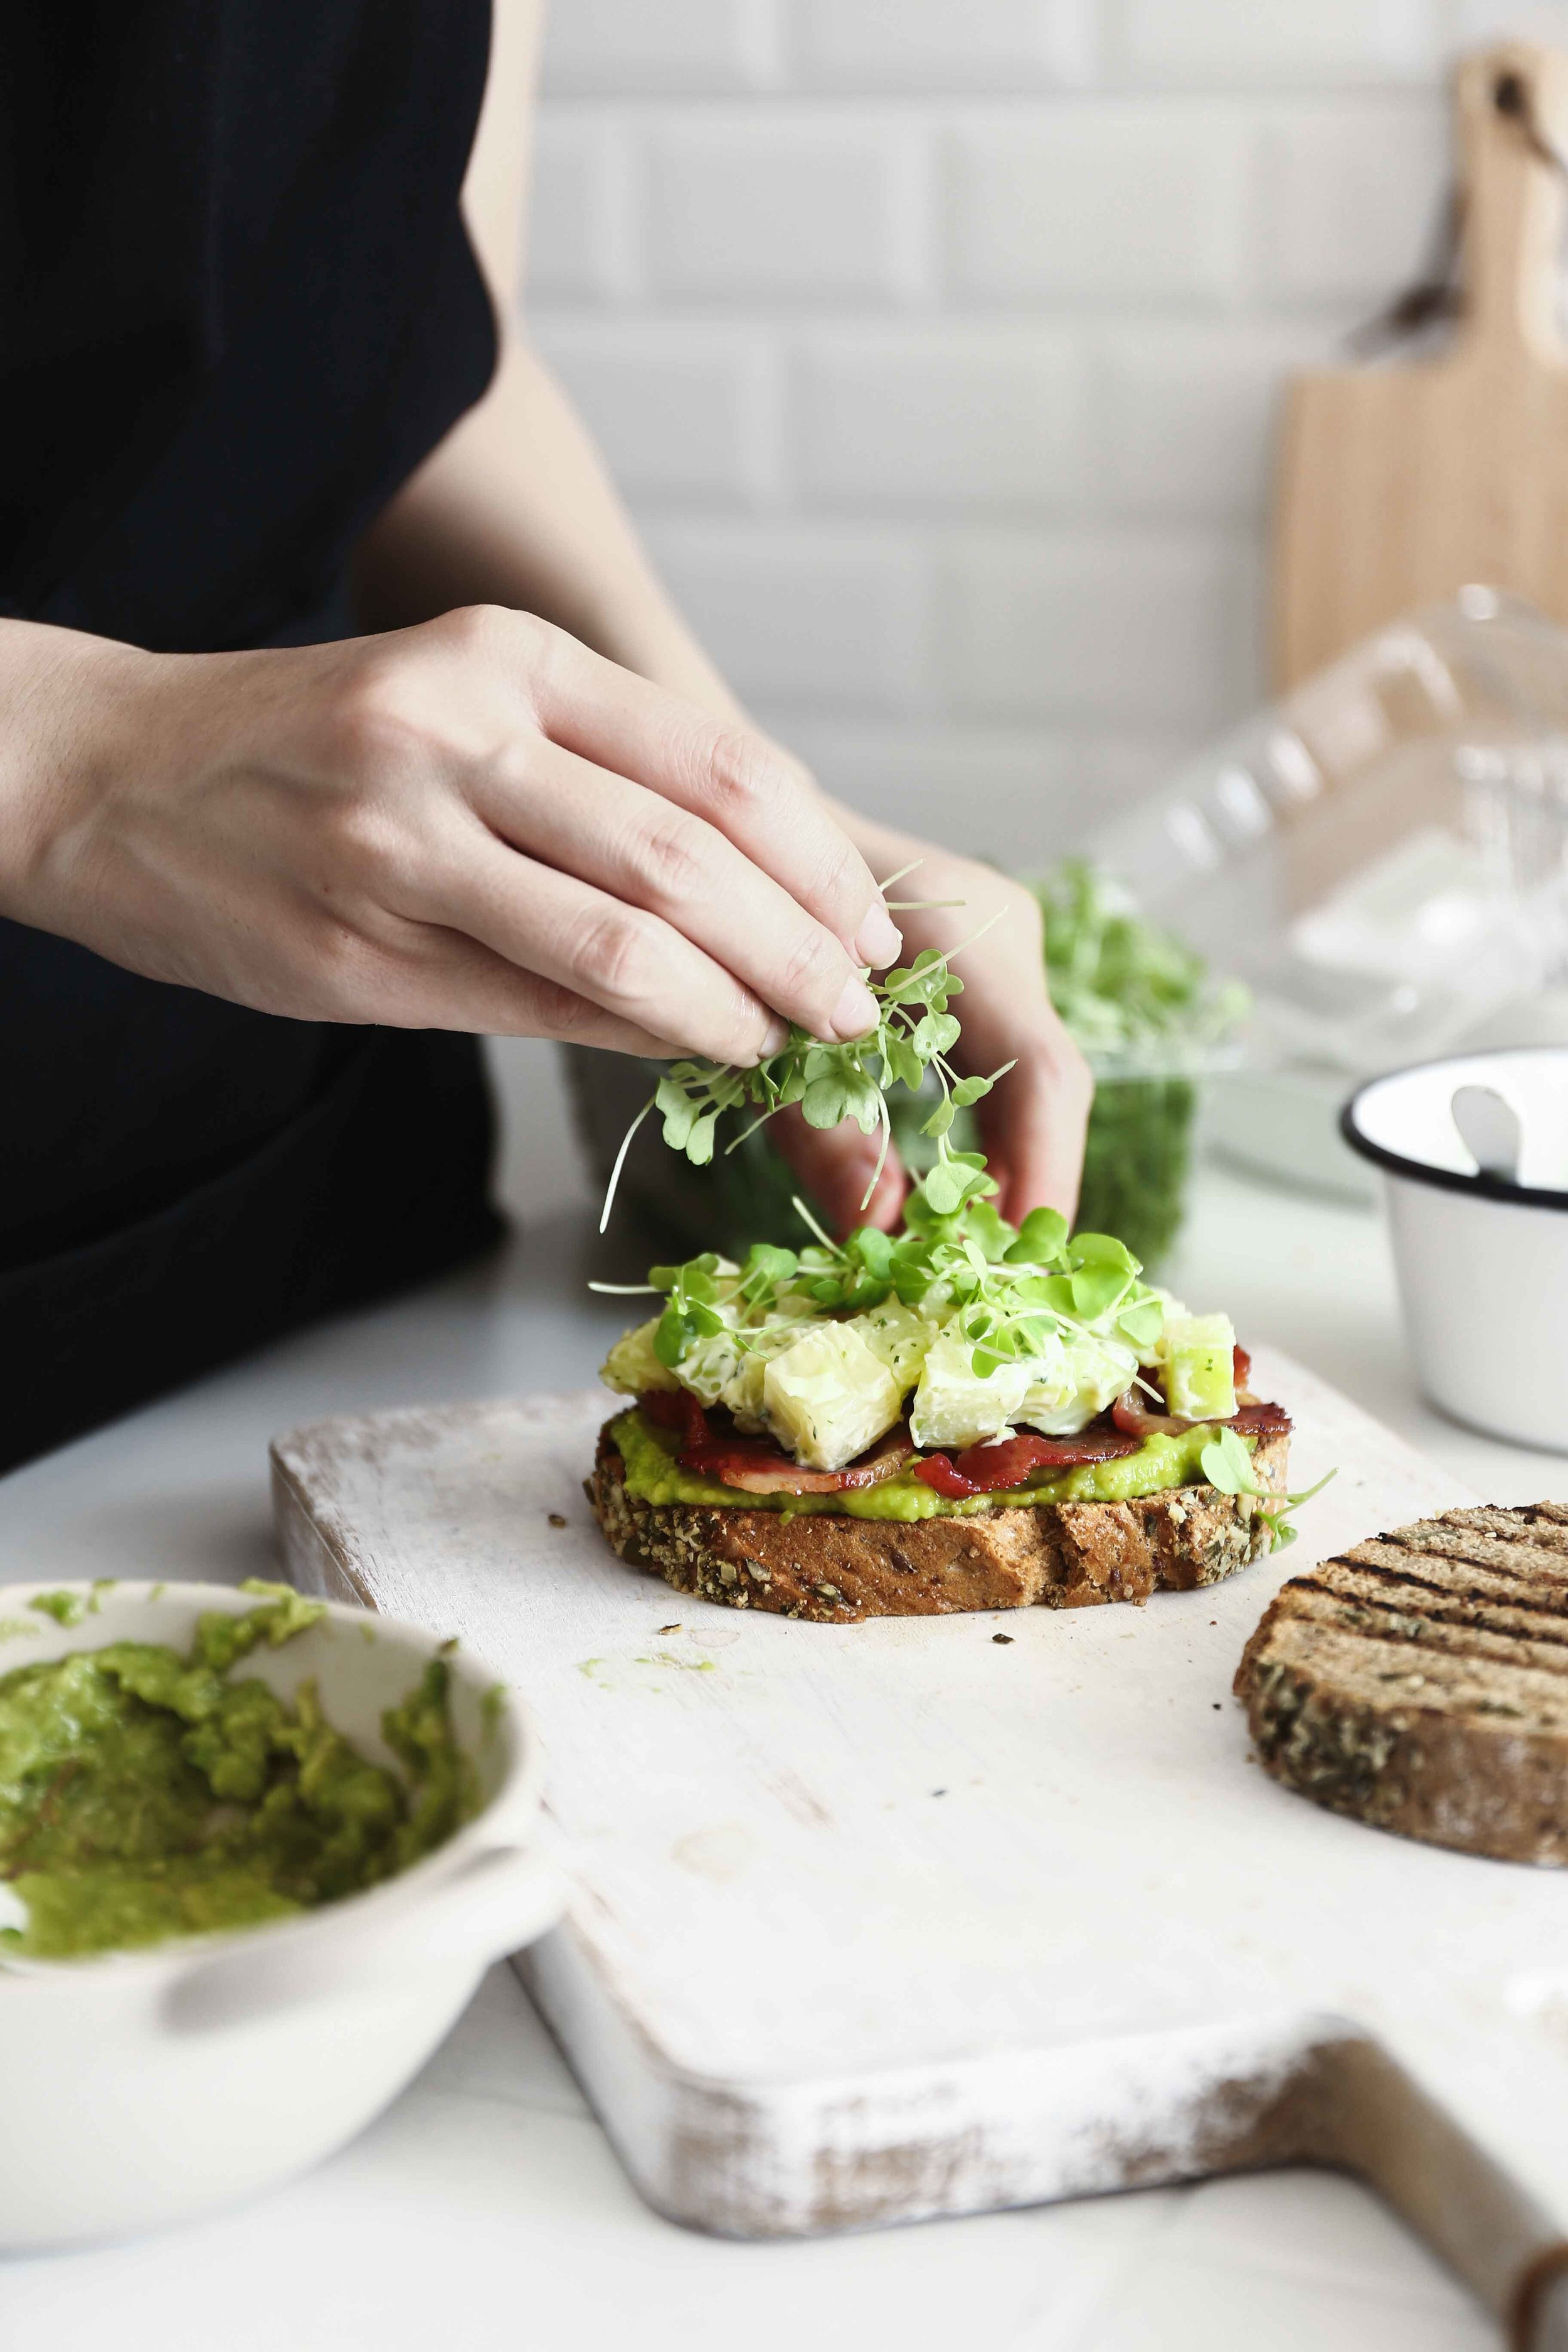 sanwiches by meo thuy duong 3.jpg